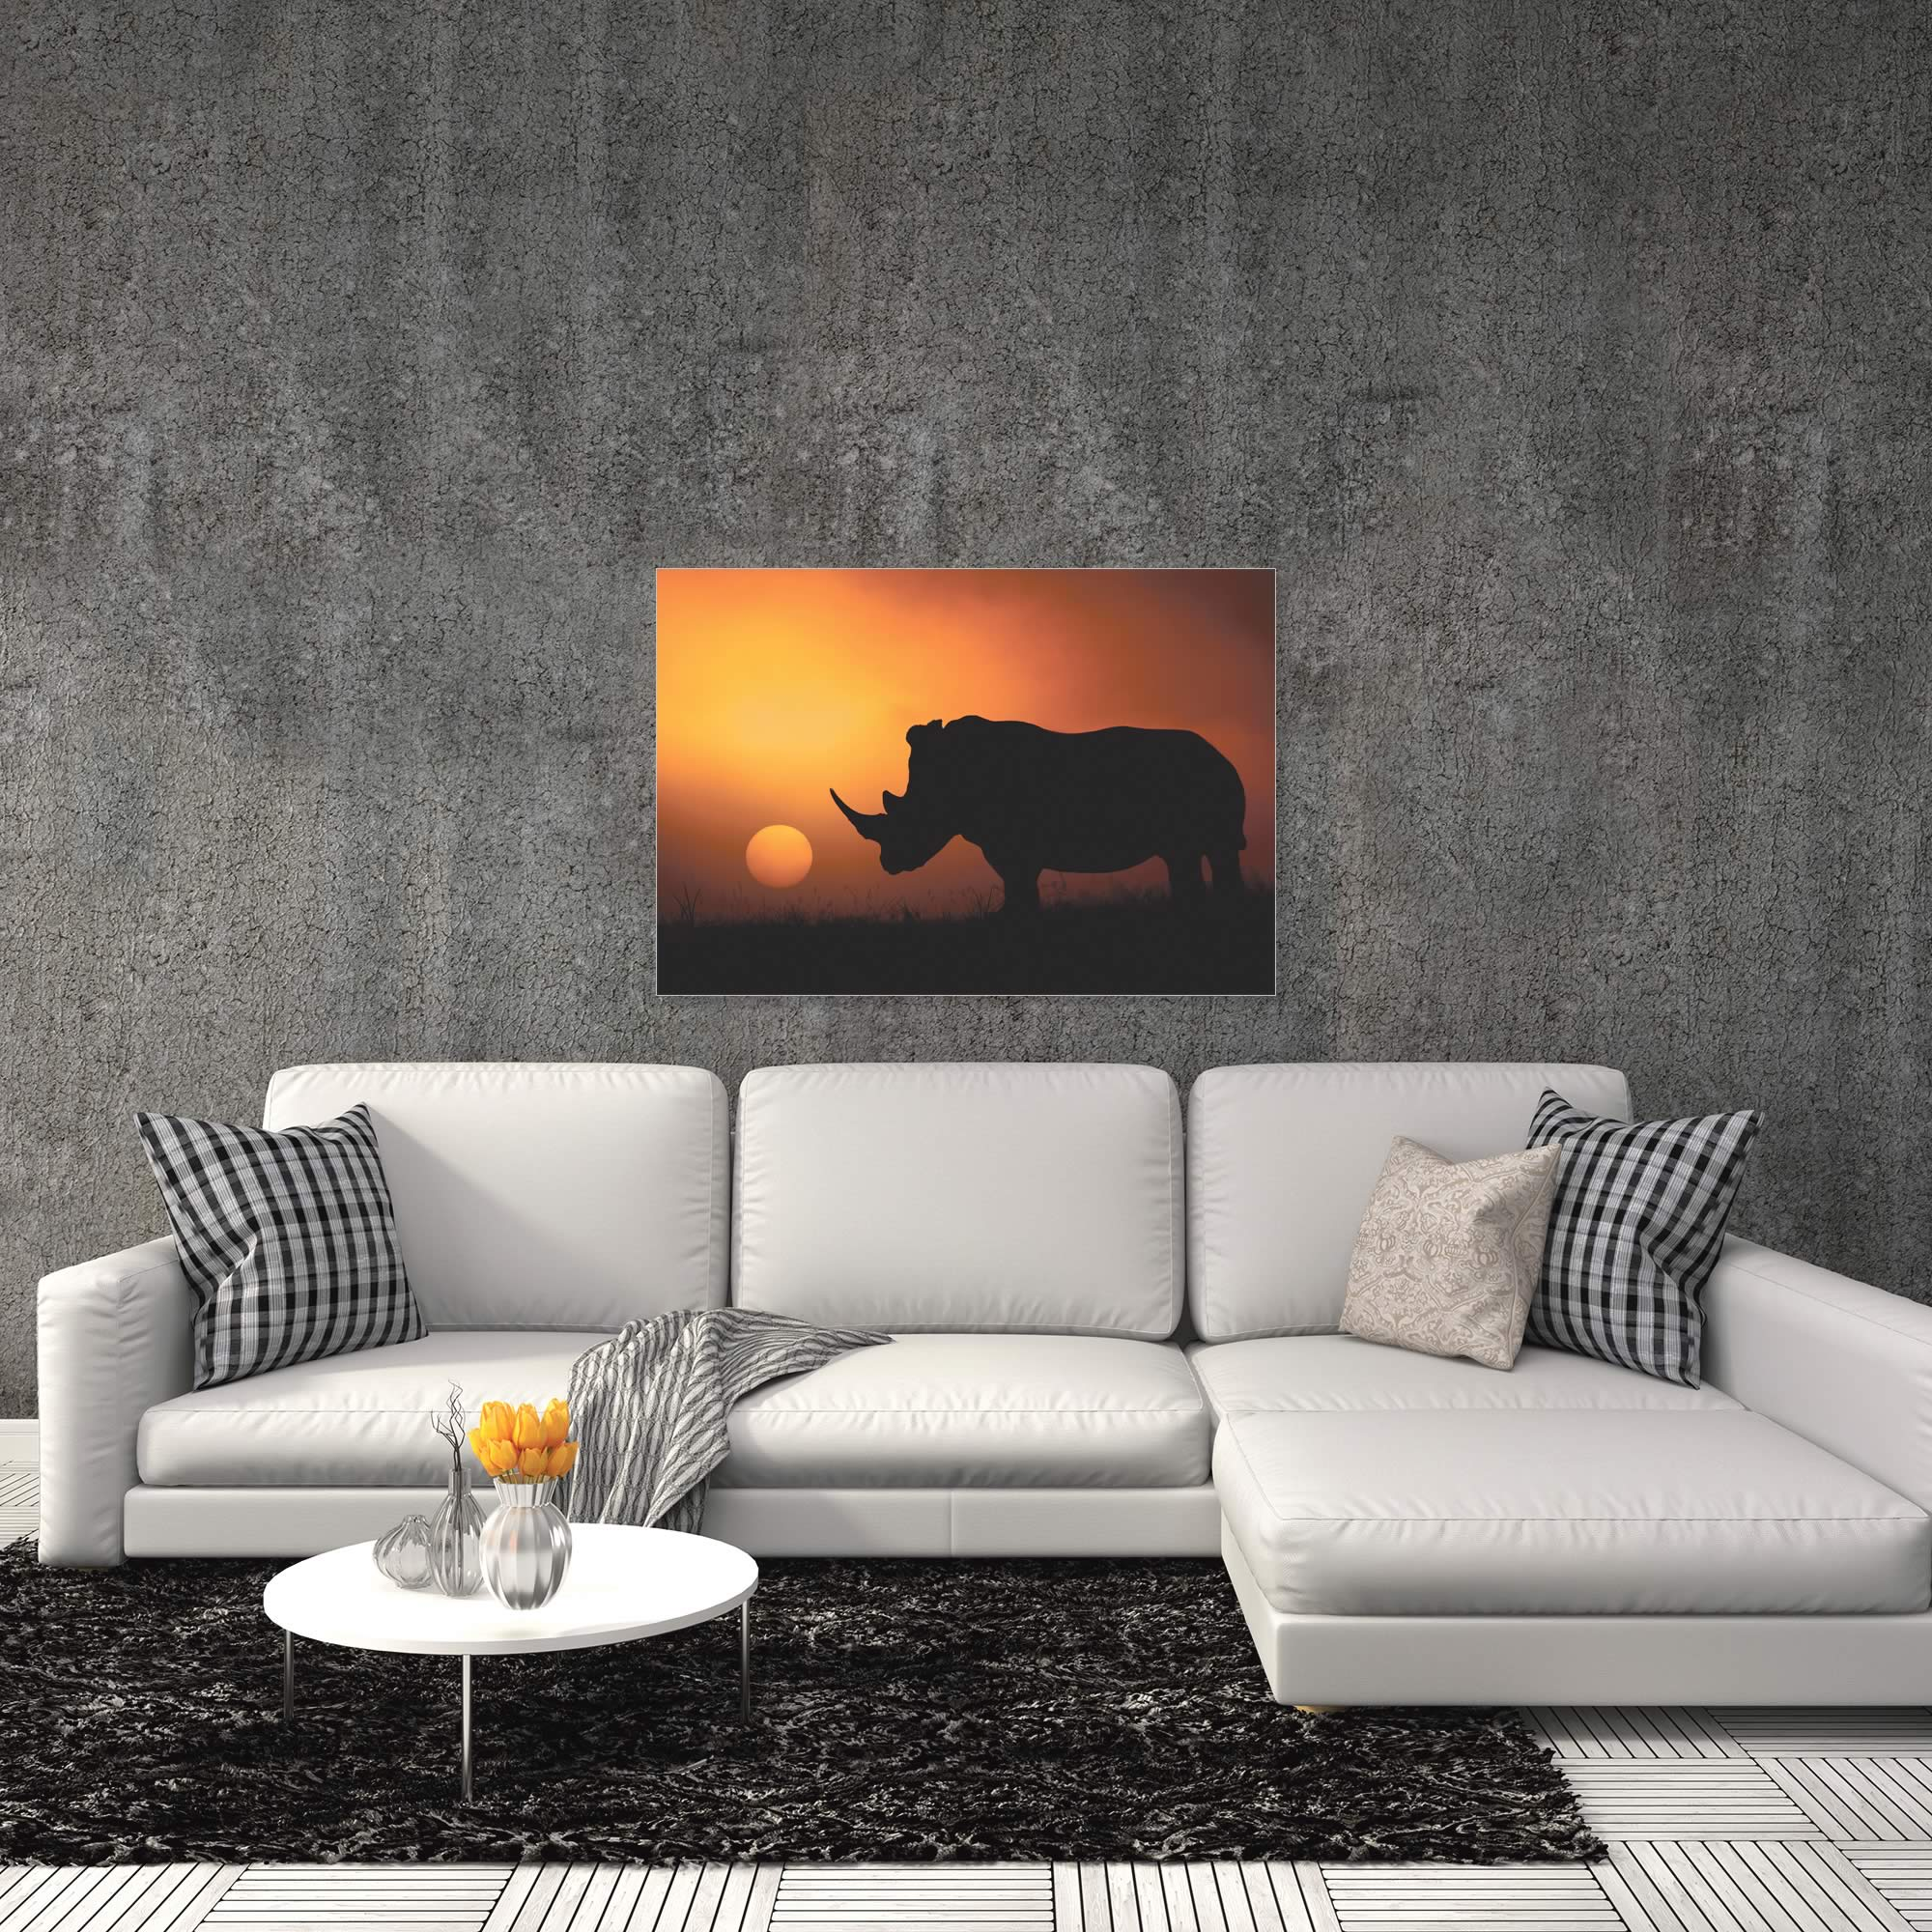 Rhino Sunrise by Mario Moreno - Rhino Silhouette Art on Metal or Acrylic - Alternate View 1